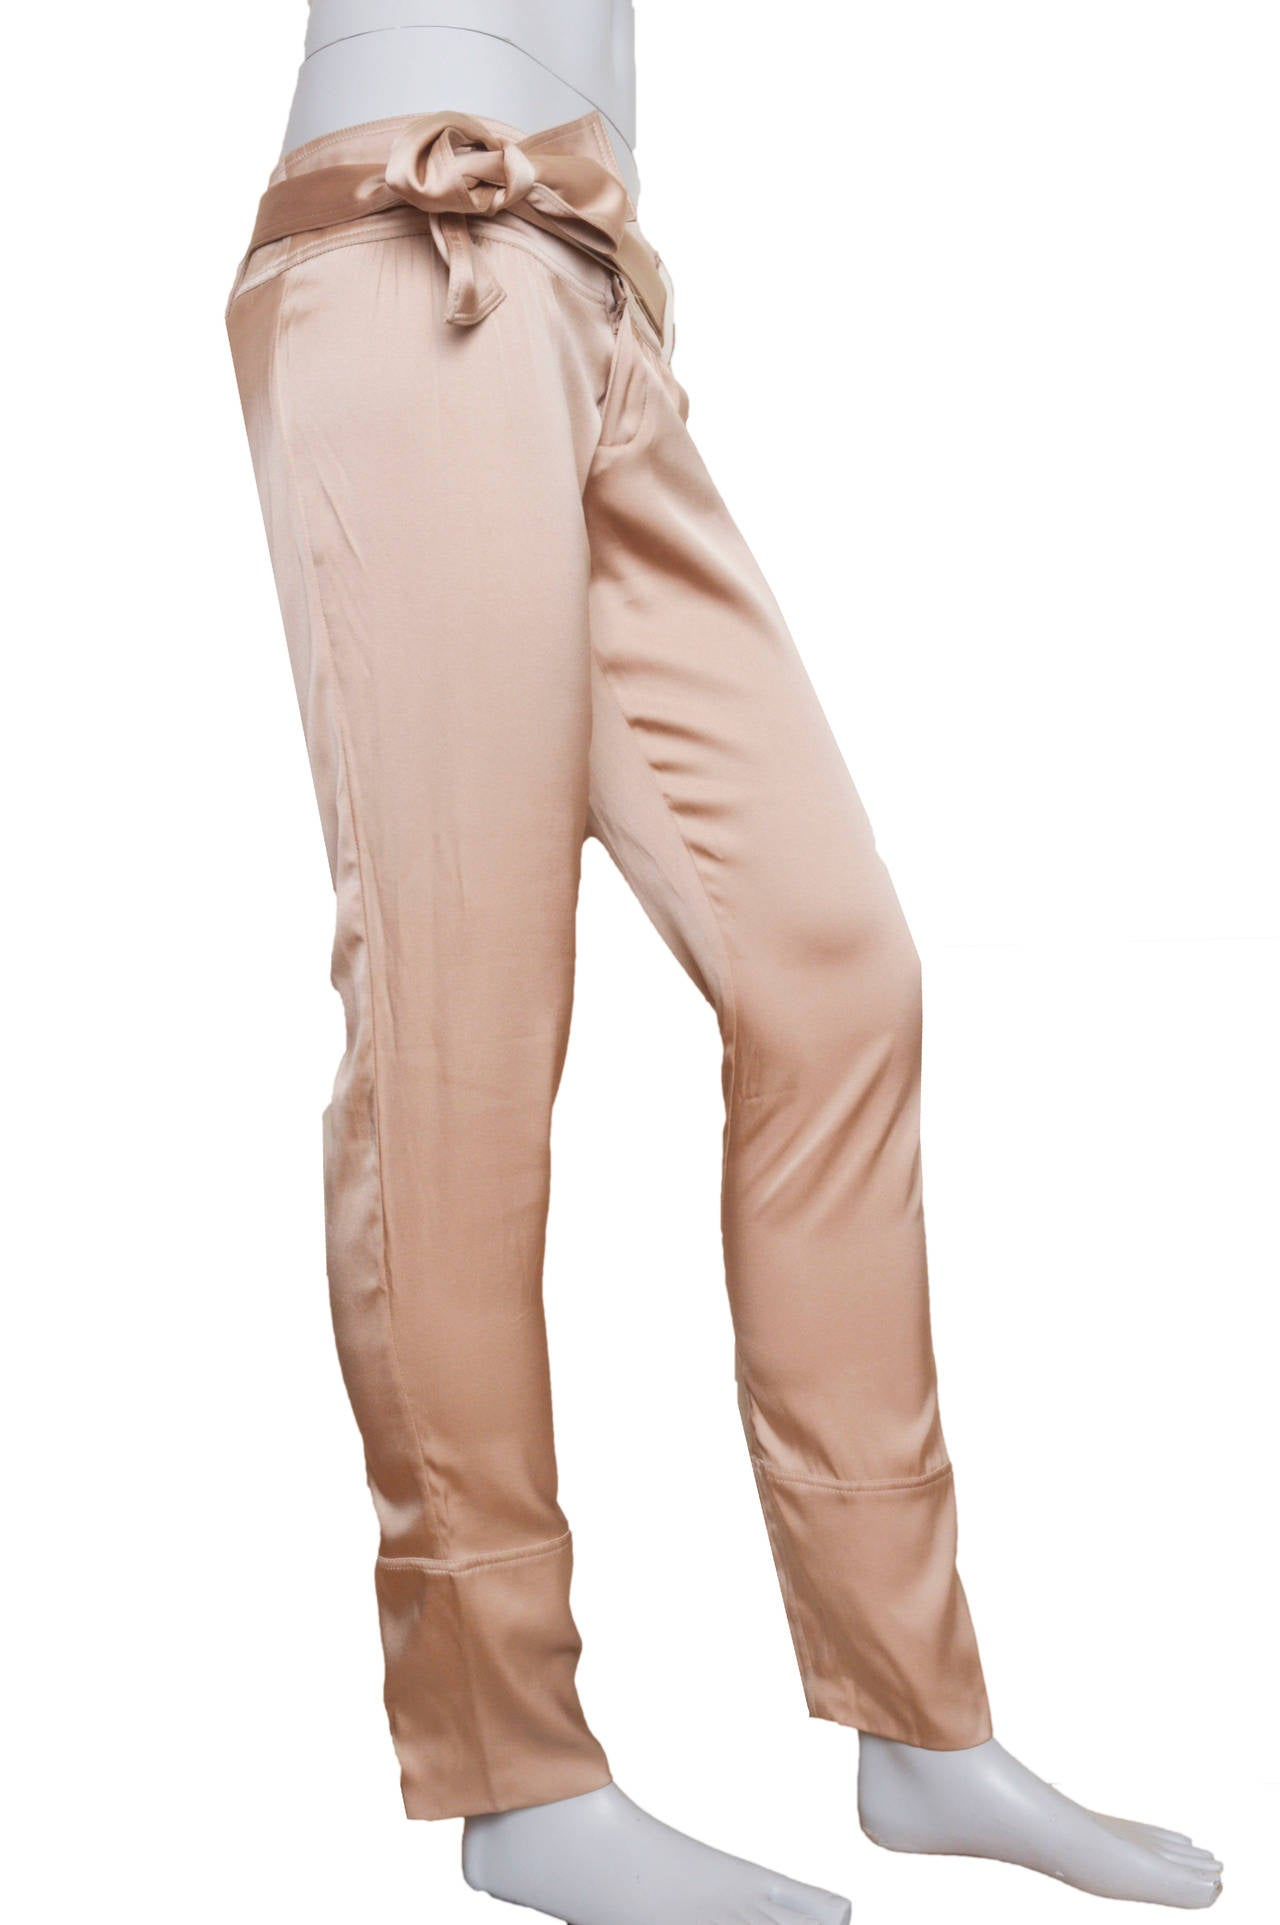 Gucci Champagne Silk Pencil Leg Trousers In Excellent Condition For Sale In San Francisco, CA